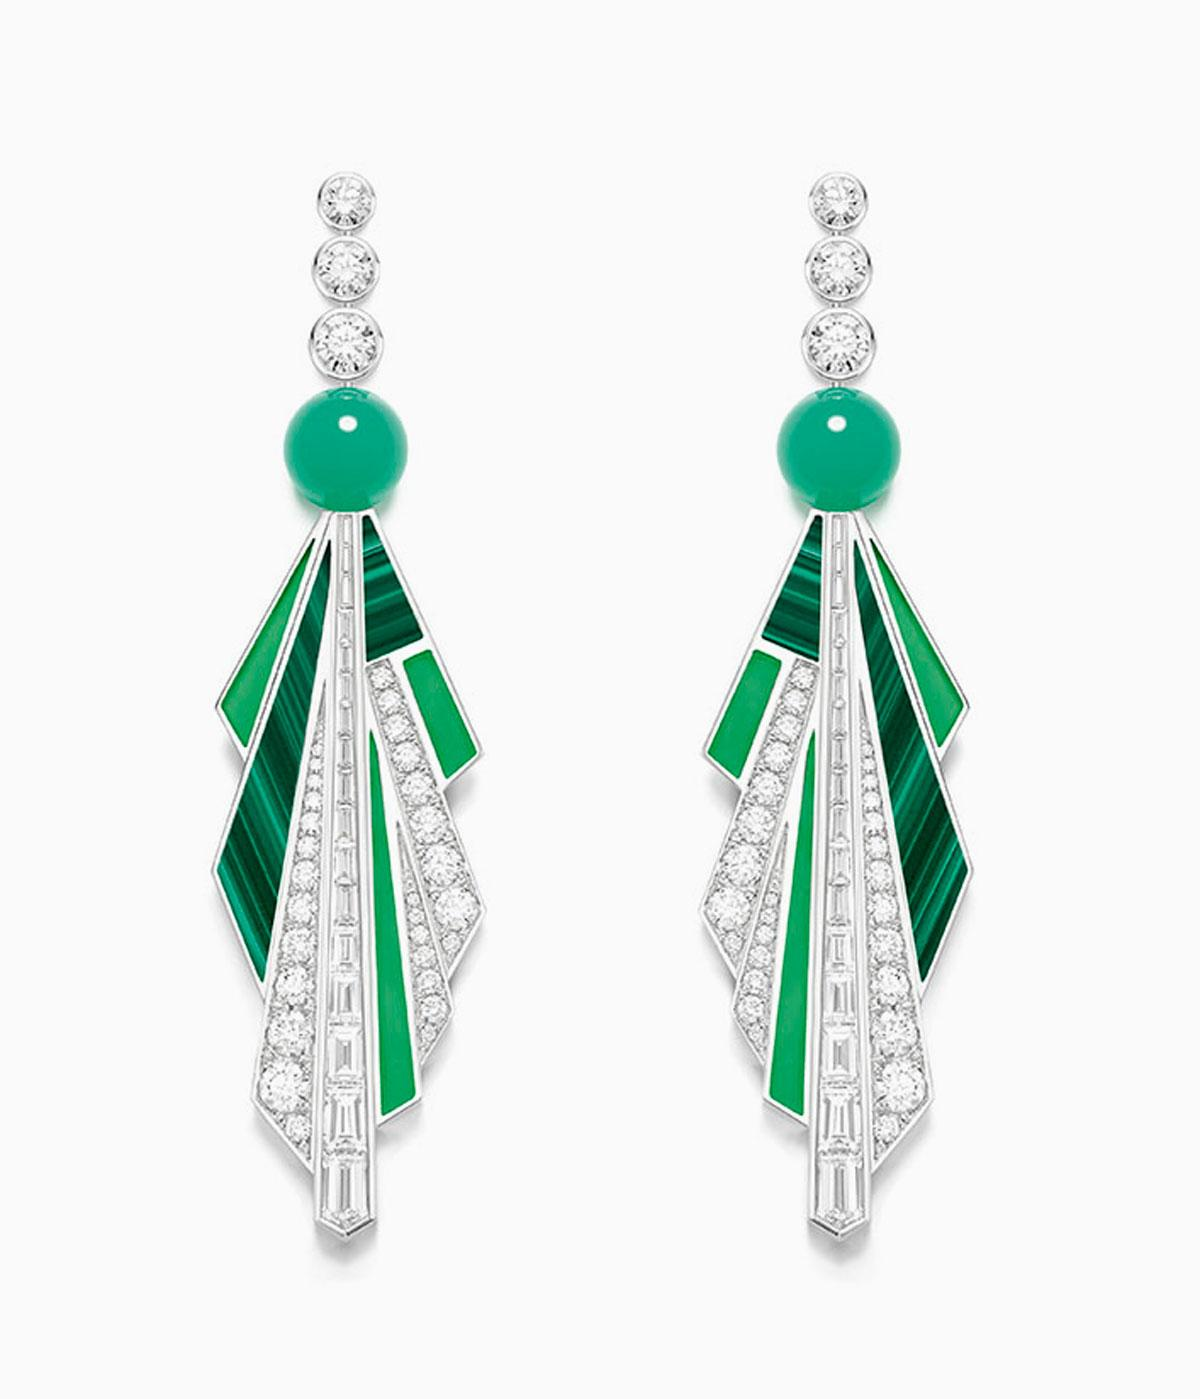 Piaget S New High Jewellery Collection